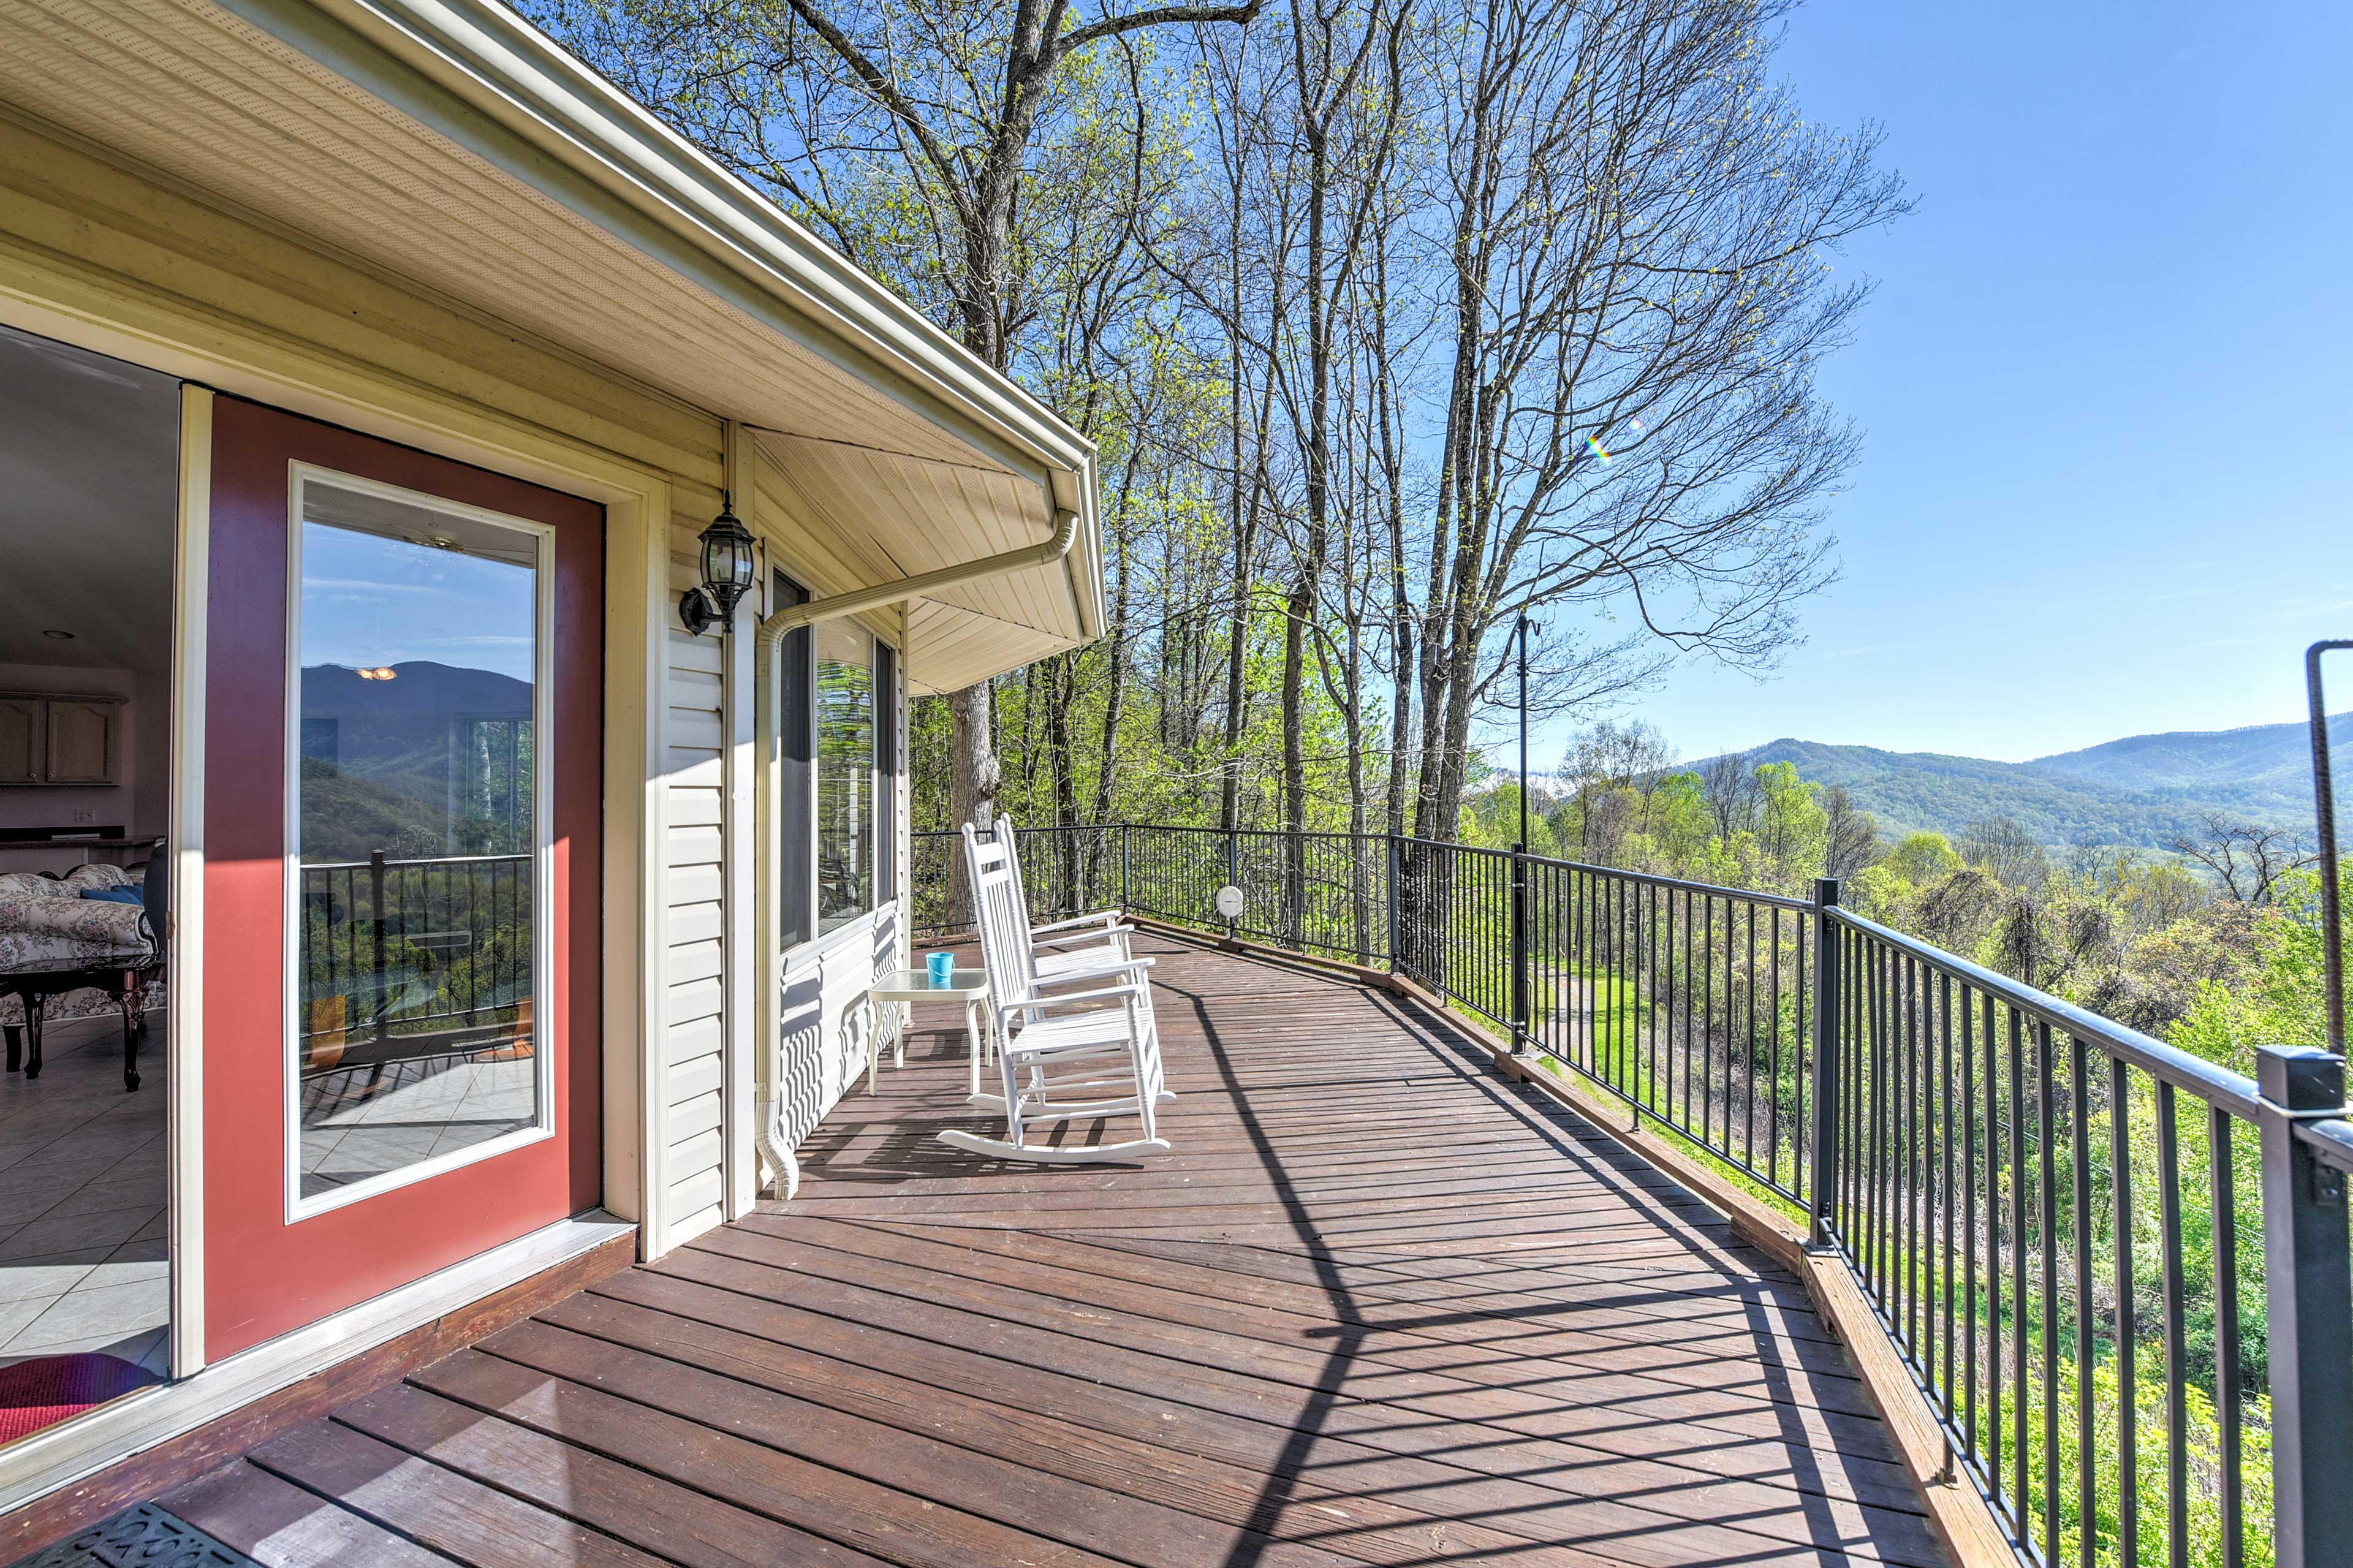 Get away to Blue Ridge Mountain when you stay at this apartment in Burnsville.